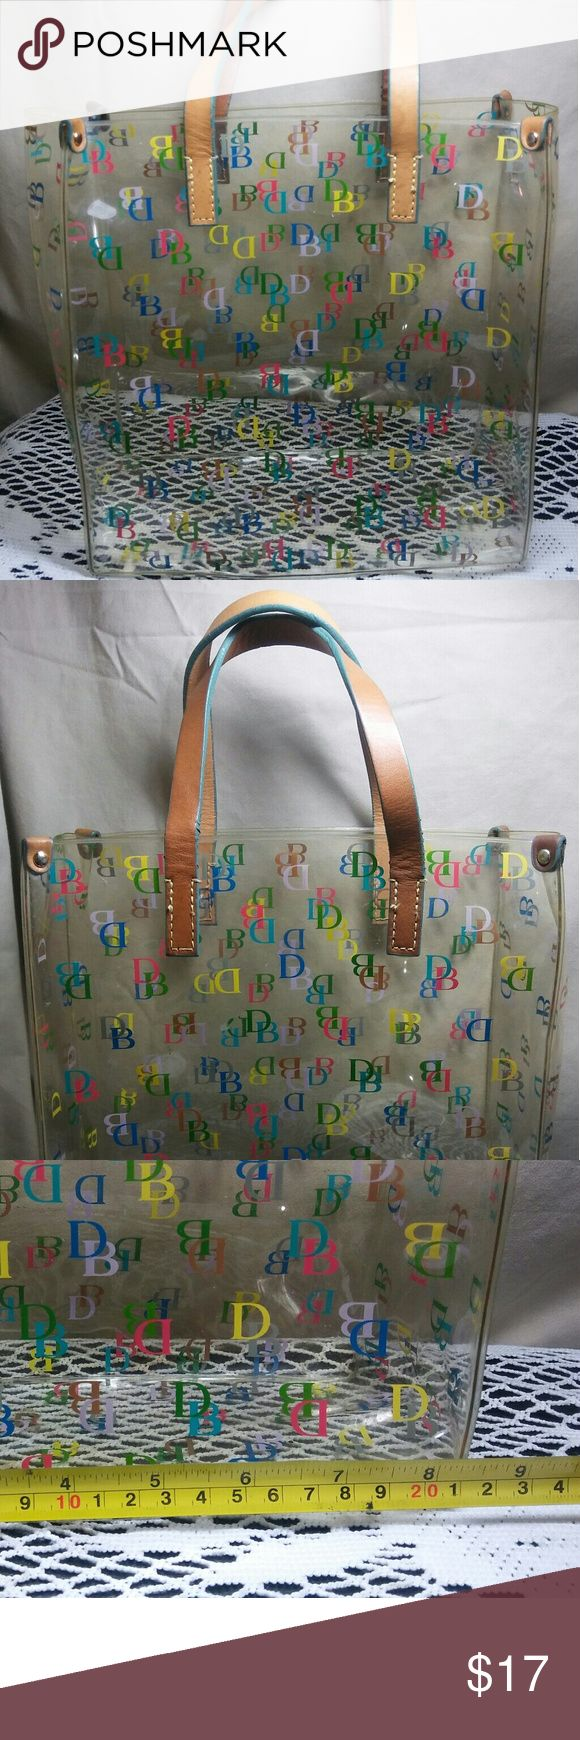 Dooney and Bourke Small lunch bag tote Small tote bag with tan leather Strap handle Dooney & Bourke Bags Totes